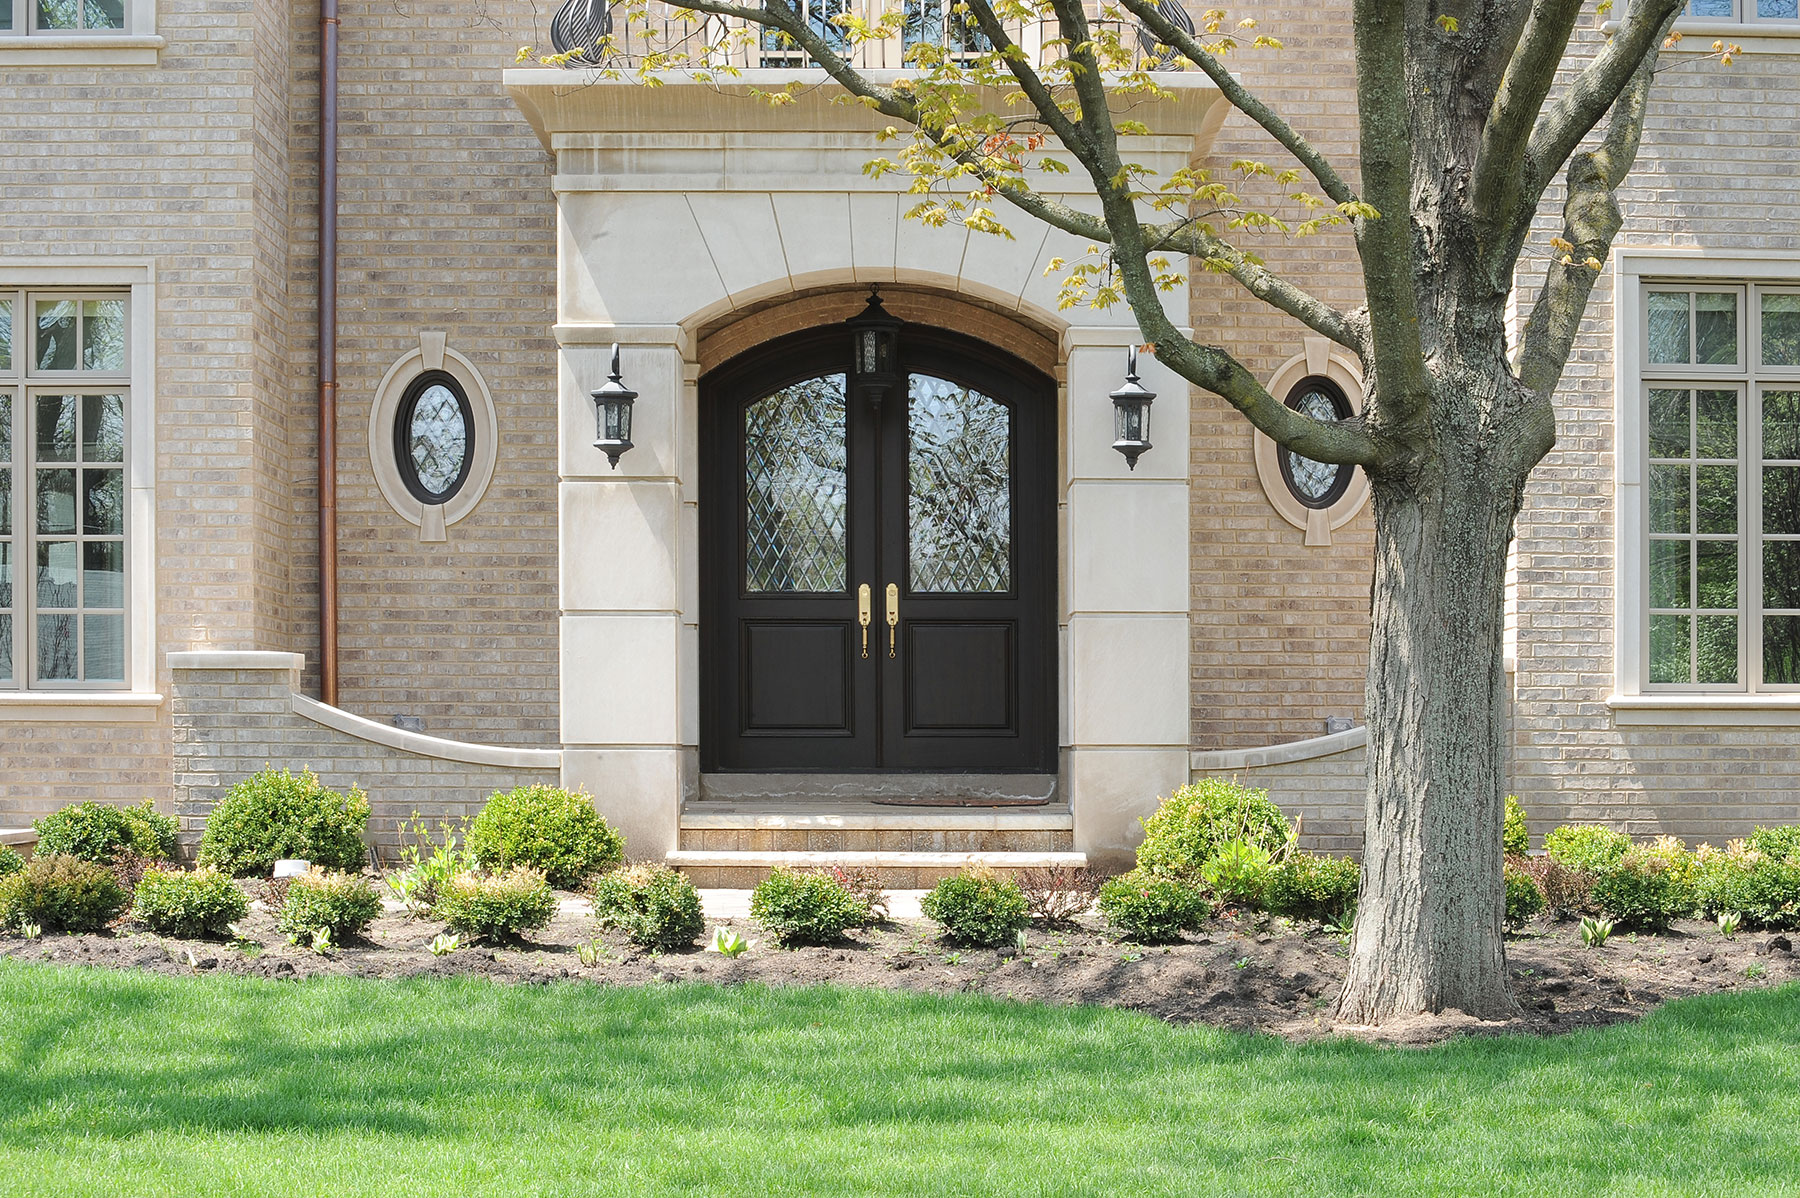 Custom Wood Front Entry Doors | Custom Solid Mahogany Wood Double Door with Transom with Clear Diamond Glass  - Glenview Doors - Custom Doors in Chicago